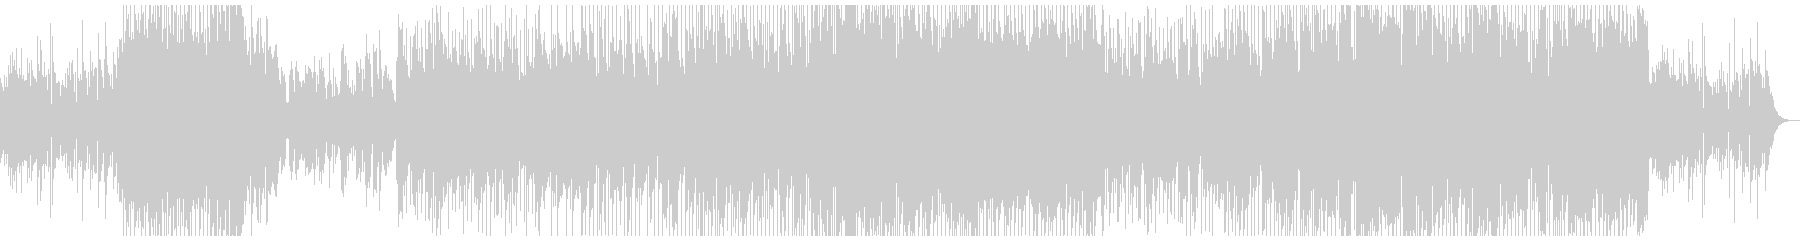 Dramatic and moving ballad's unreproduced waveform